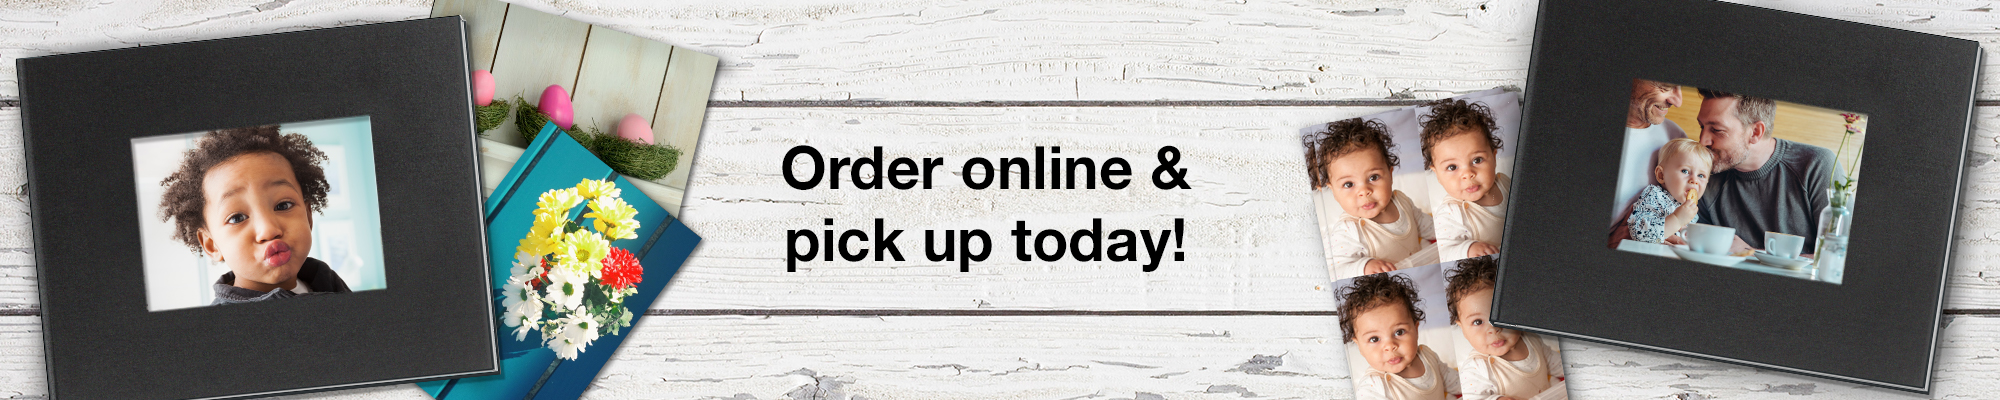 order online and pick up today!